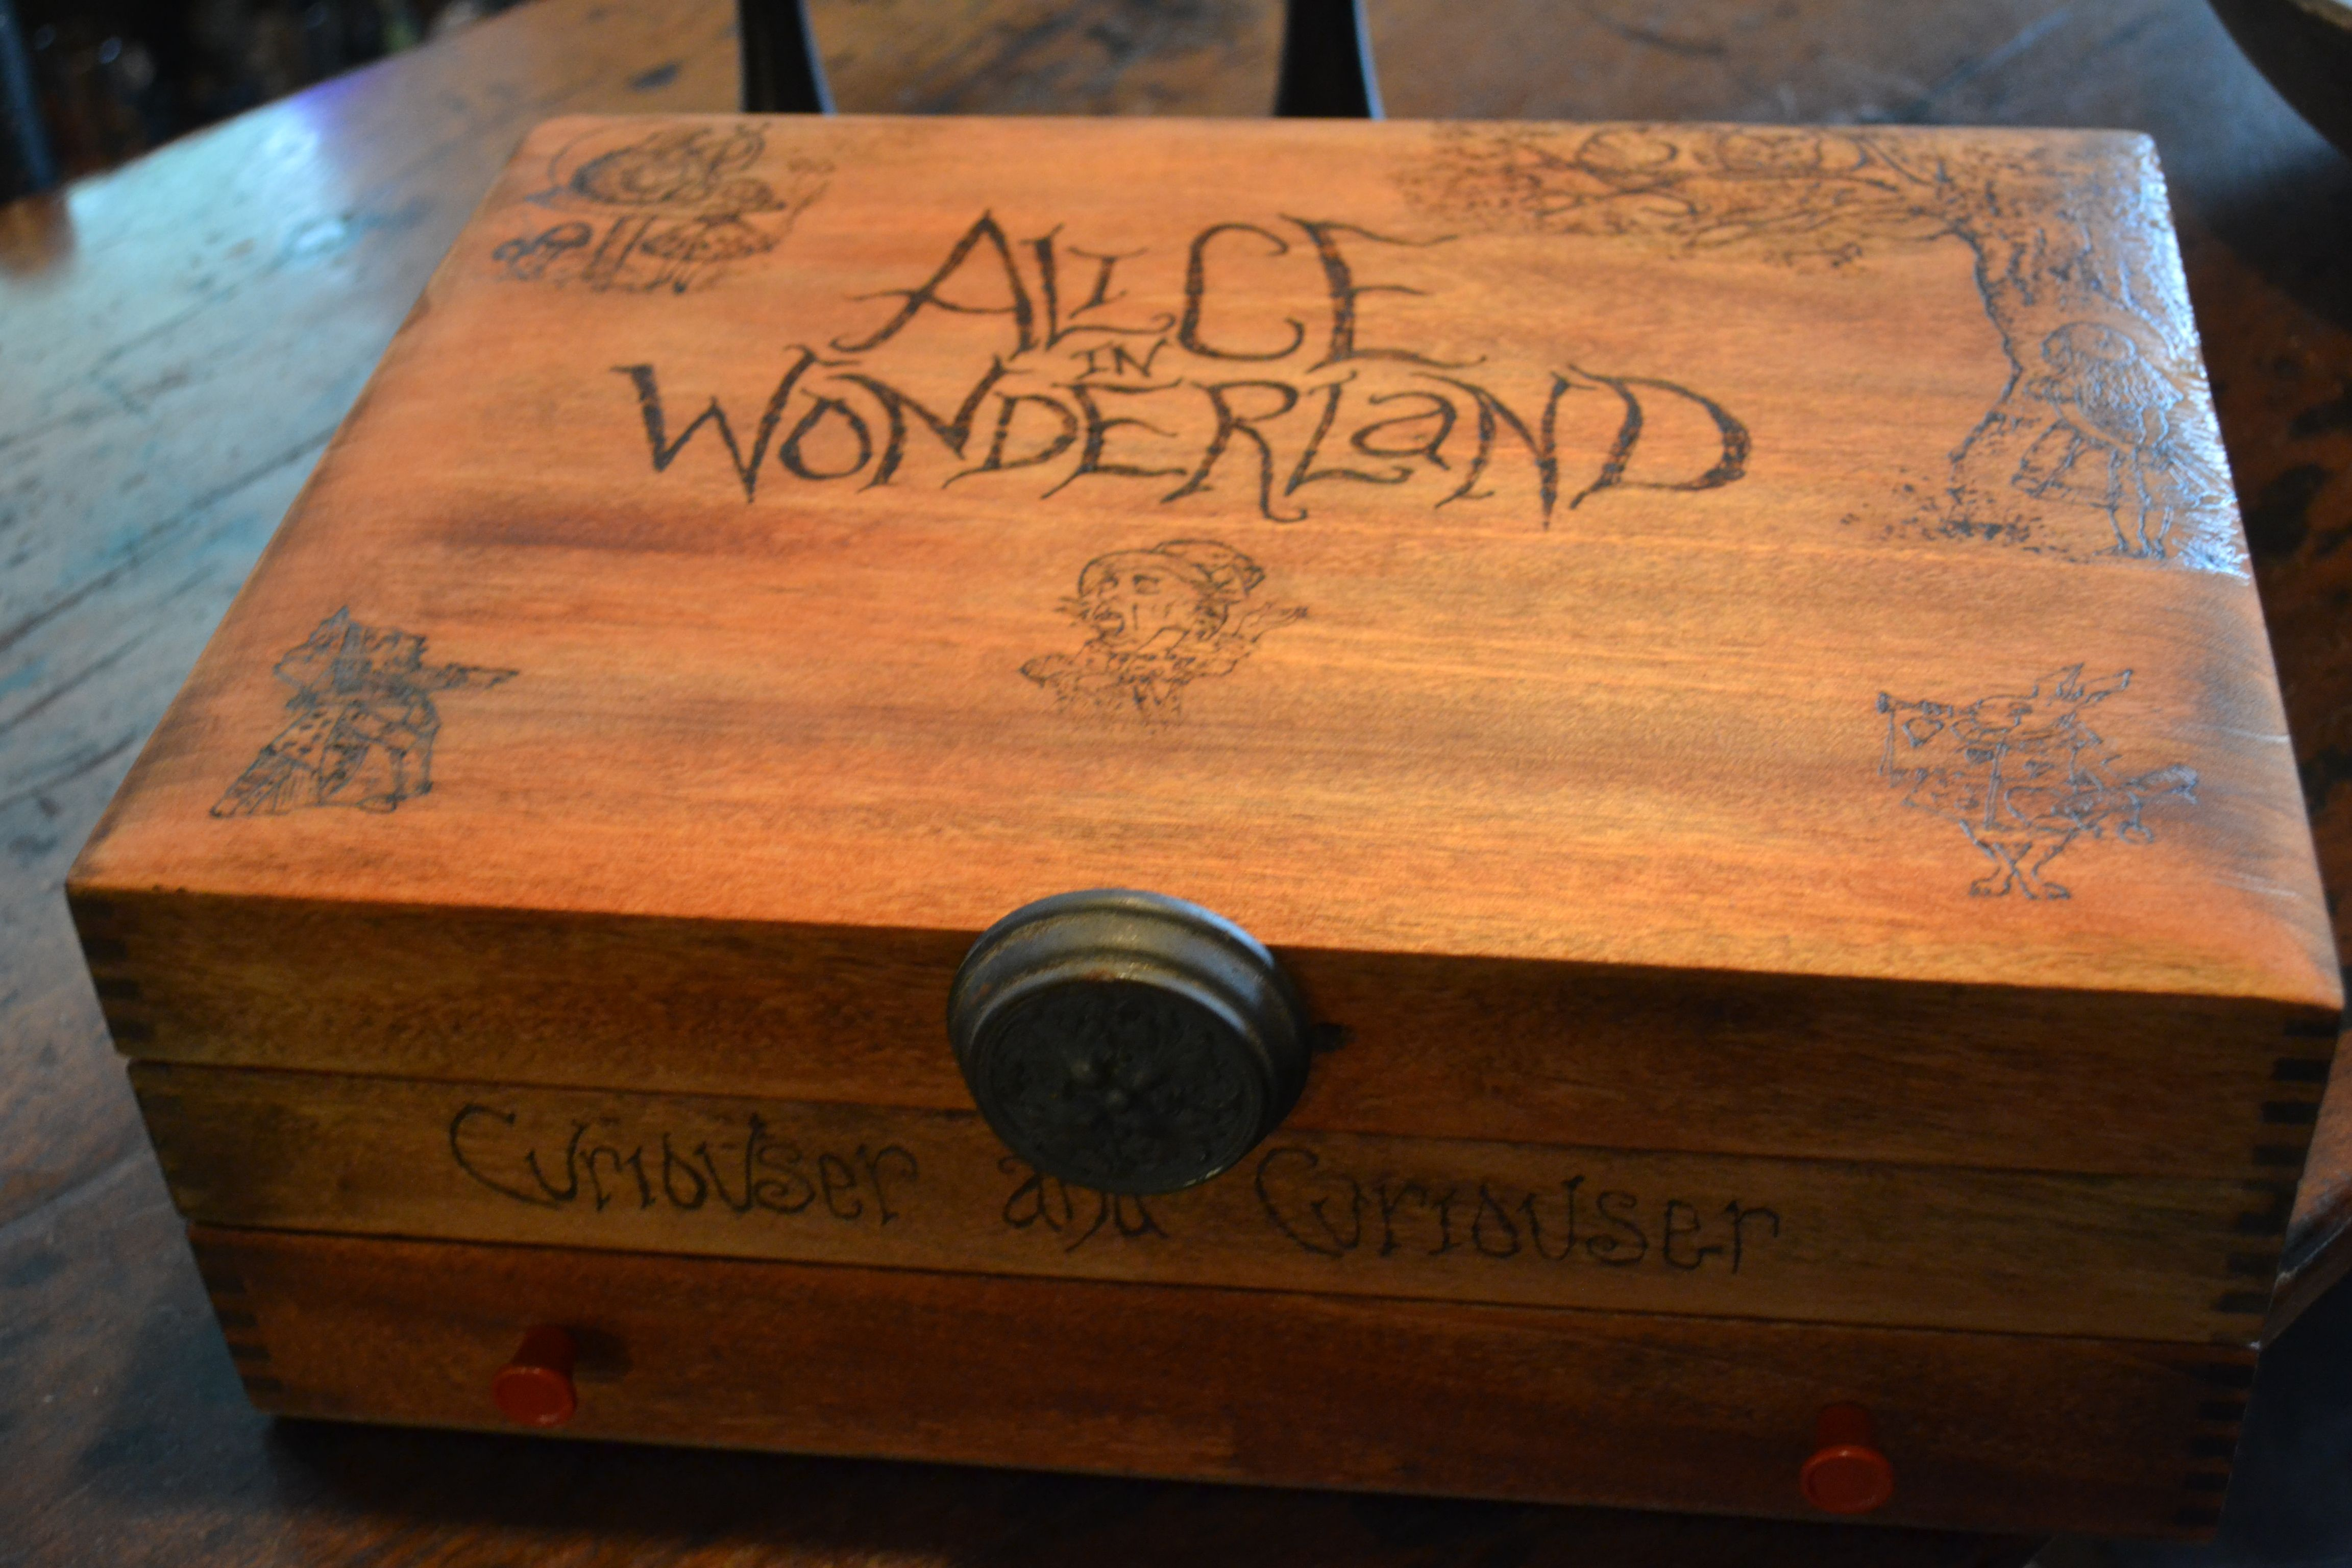 Up cycled silverware chest to my new cash box for festivals. Alice in Wonderland wood burned to last forever! I have my tray, I have my box, now I need to make a chair!